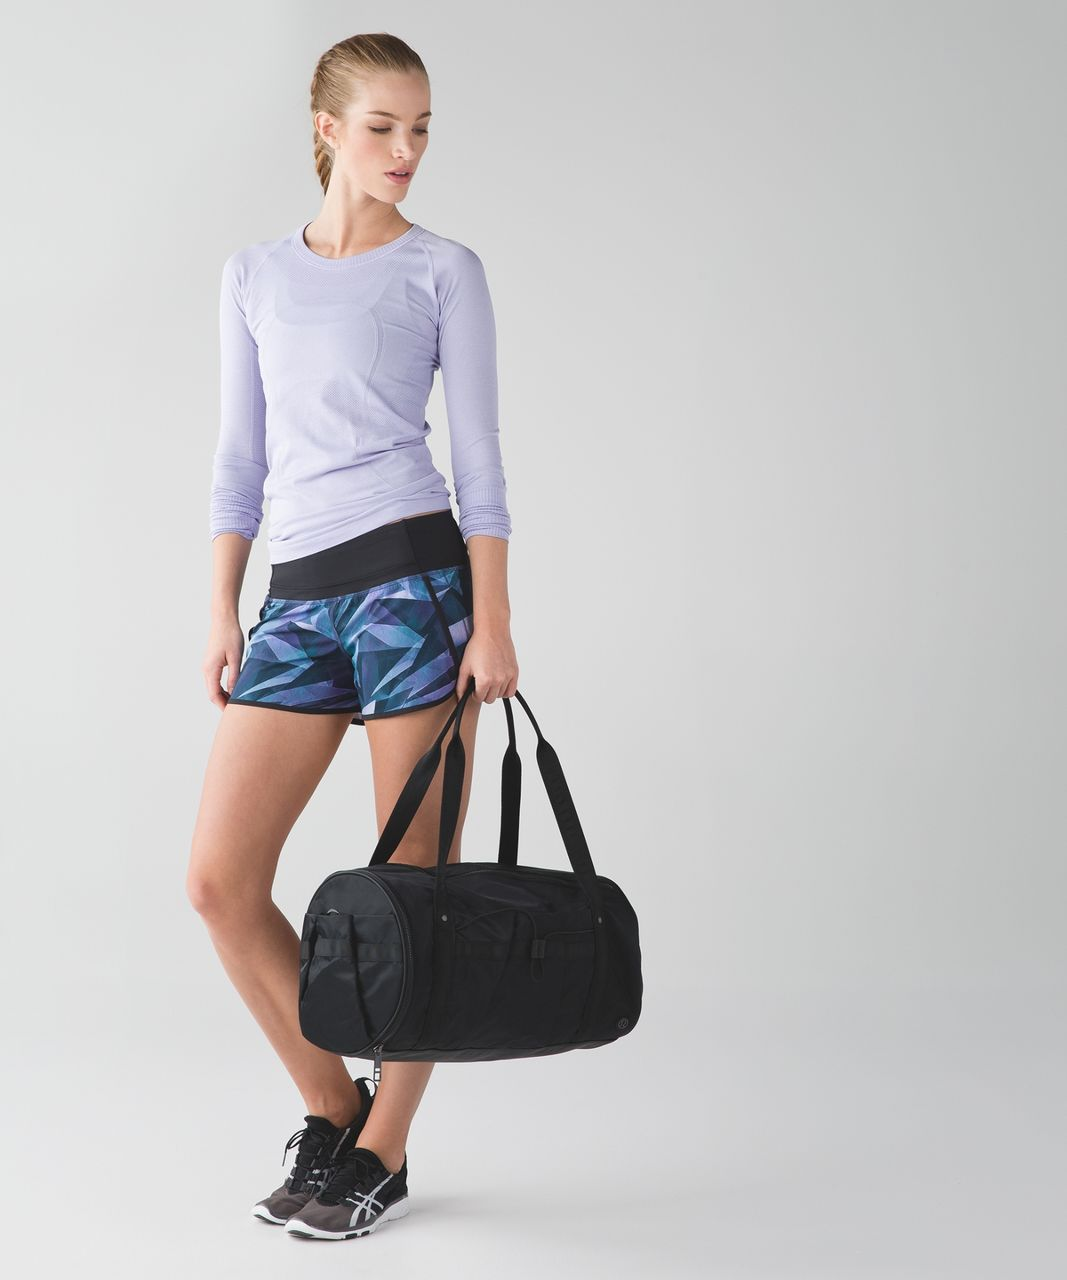 Lululemon Run Times Short *4-way Stretch - Pretty Prism Multi / Black